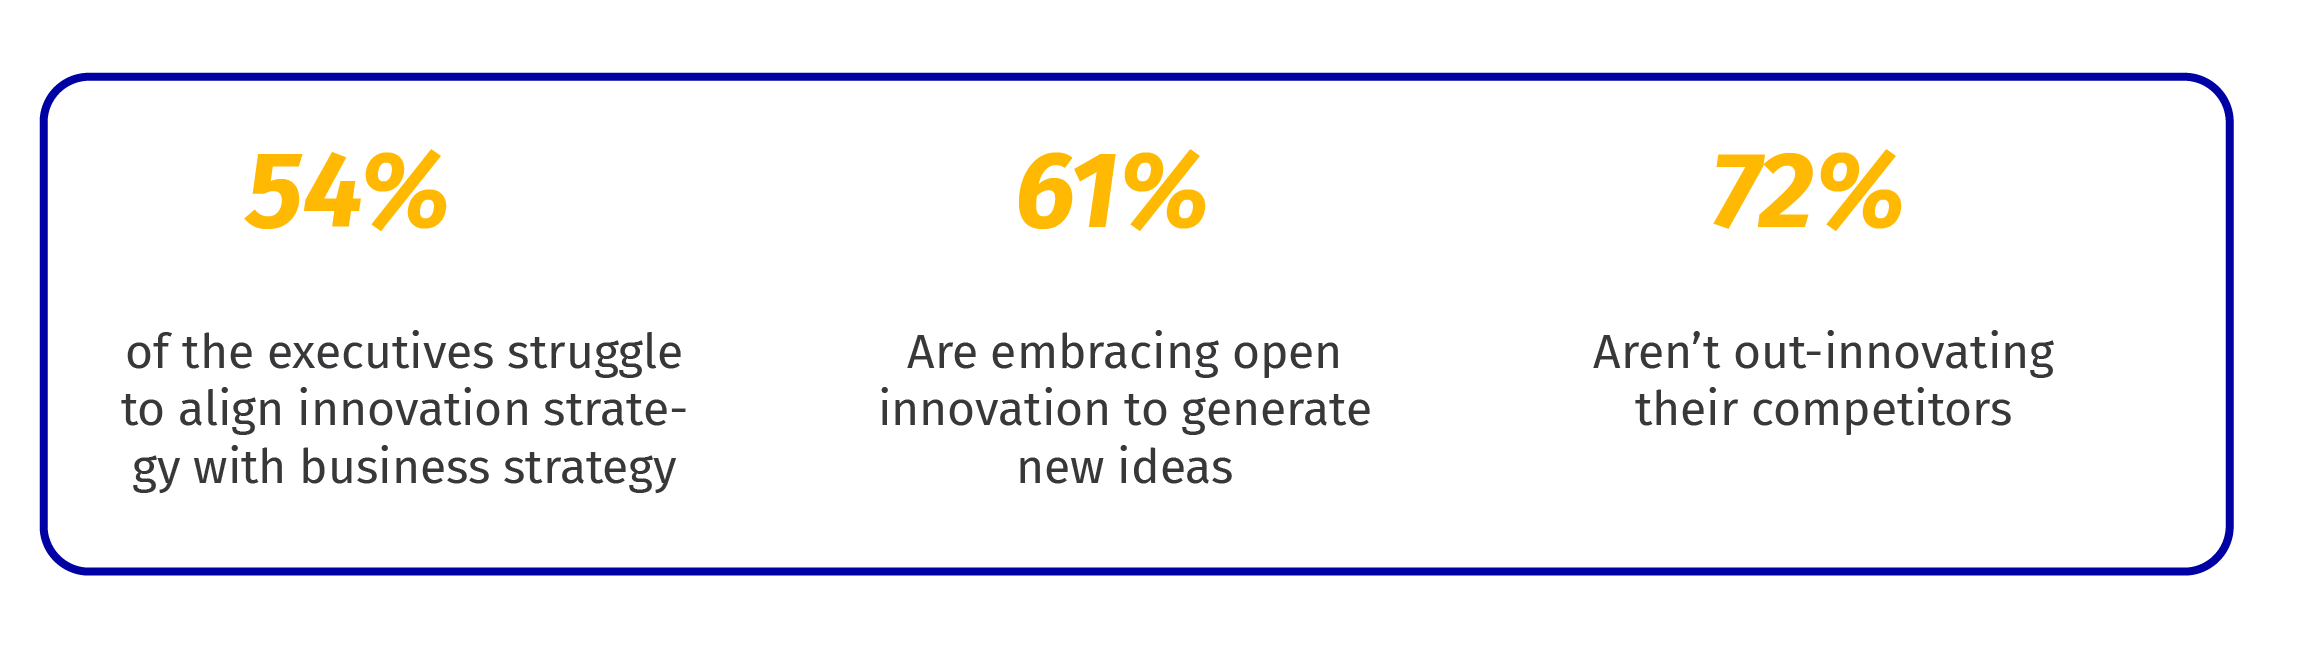 Source: PwC's Innovation Benchmark Report